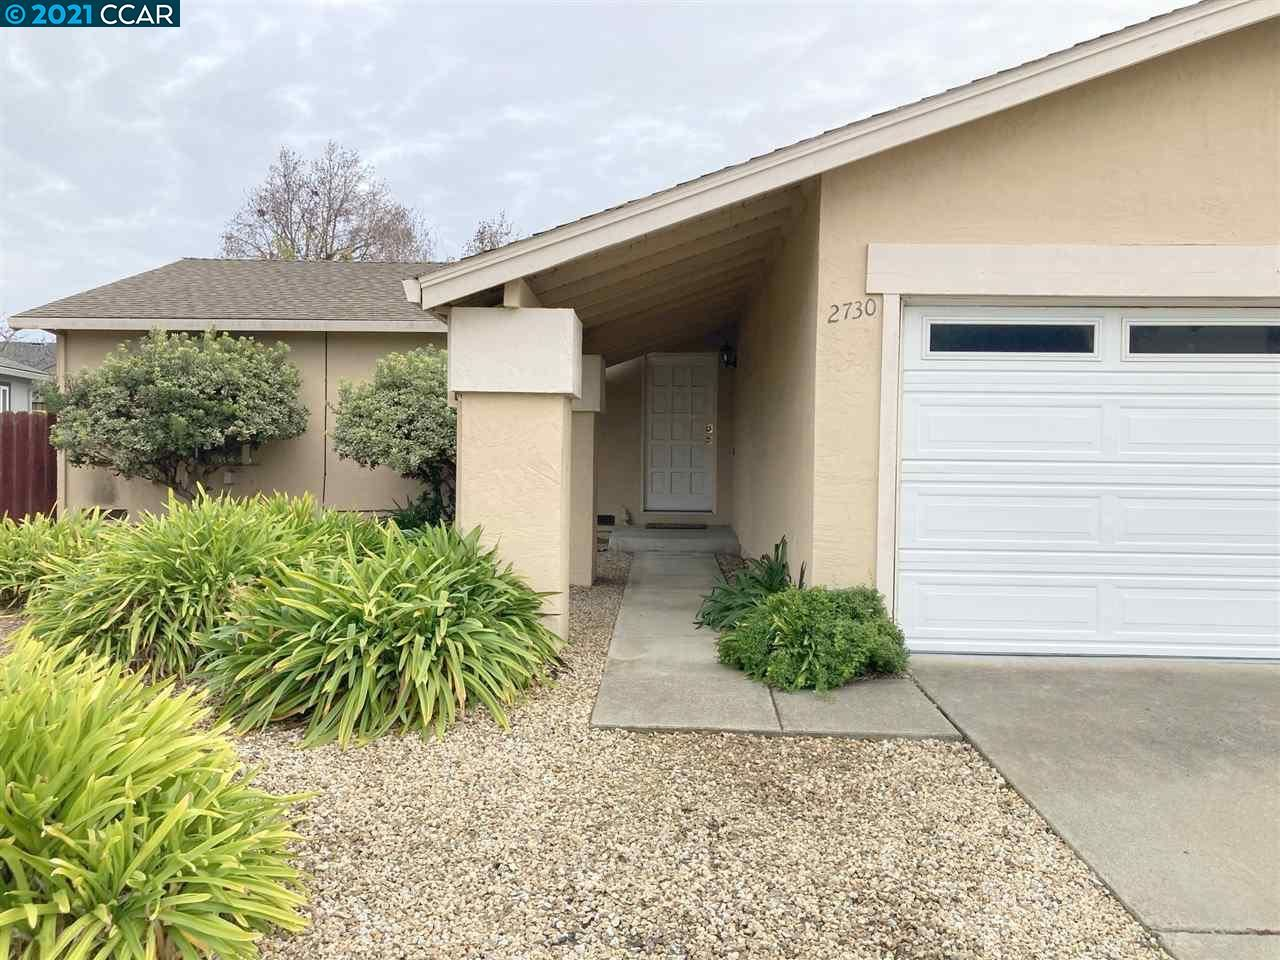 Photo for 2730 Killdeer Ct, UNION CITY, CA 94587 (MLS # 40934543)